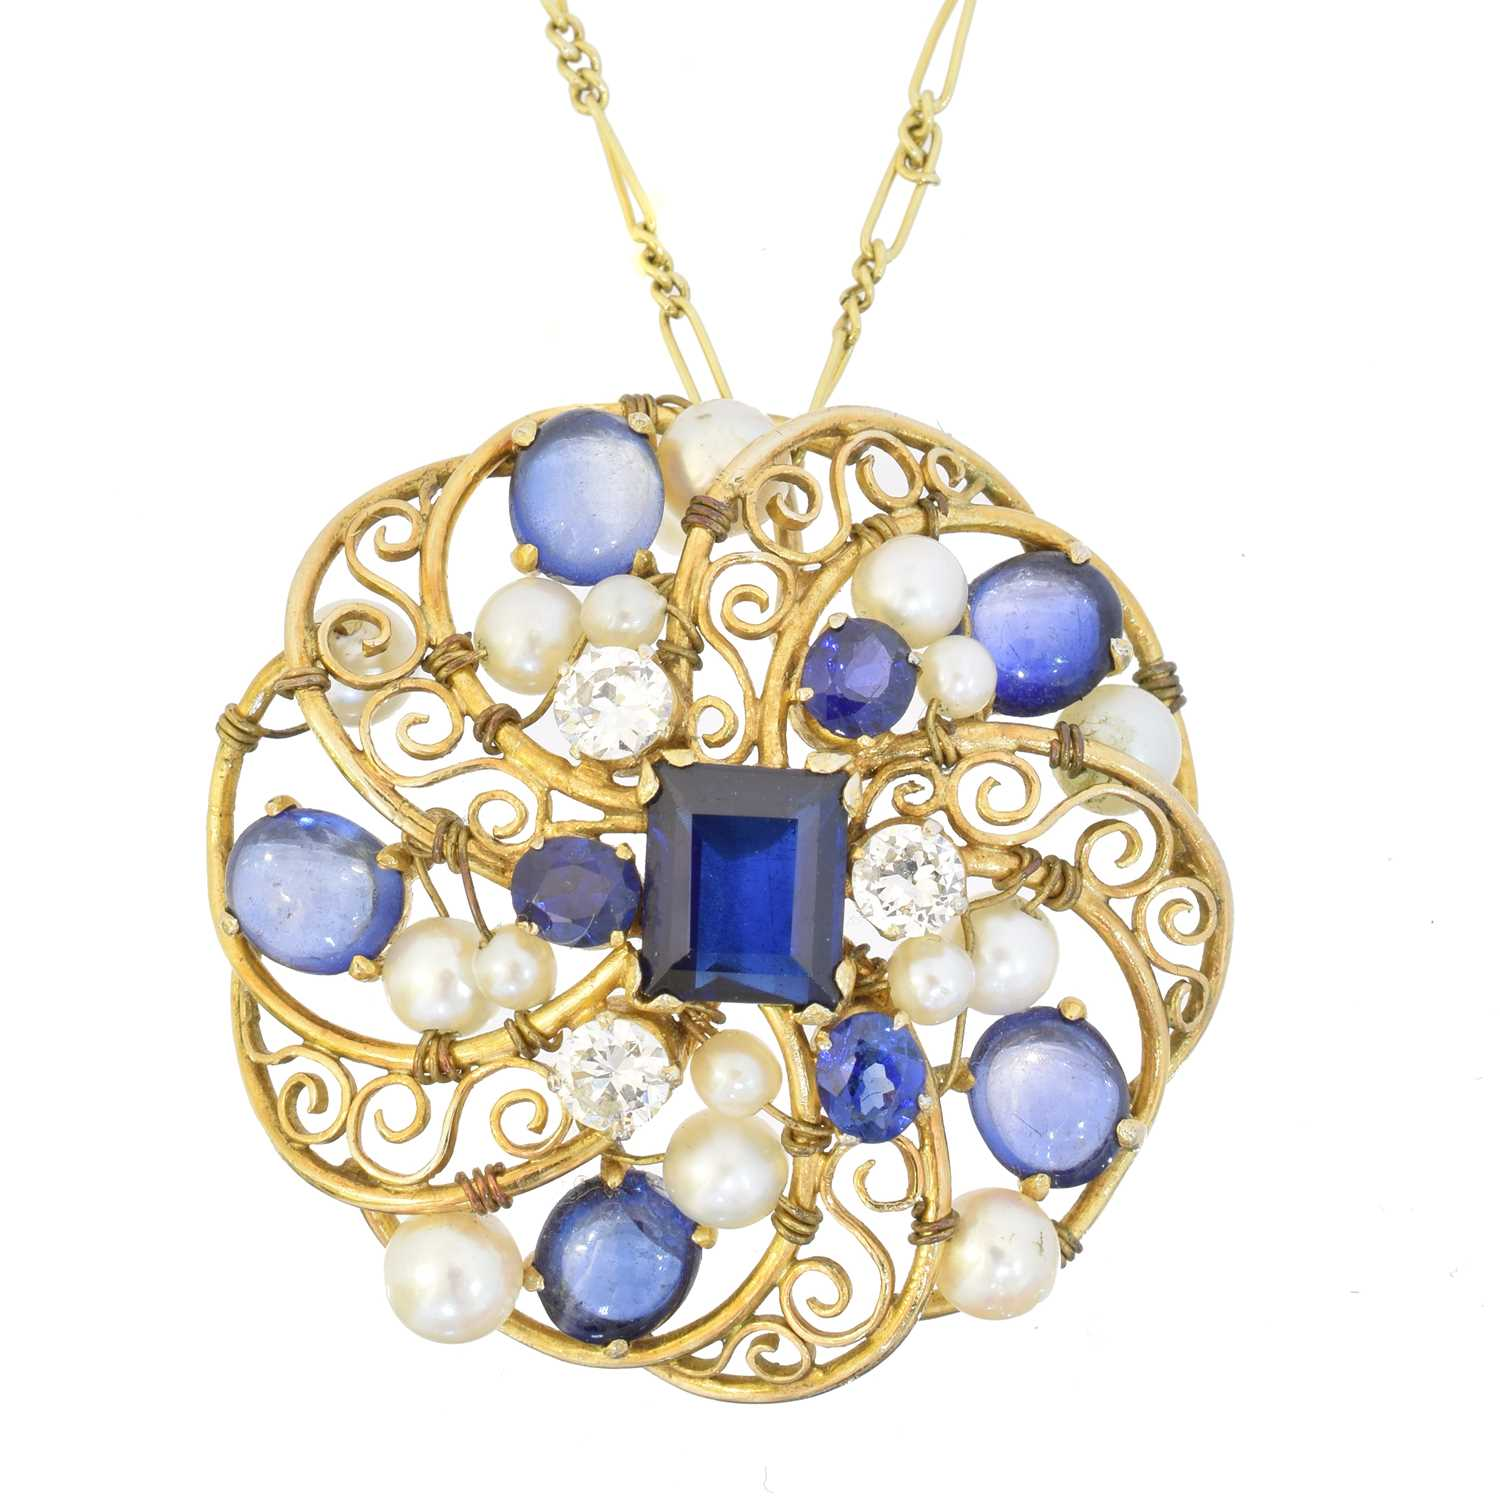 A sapphire, diamond and cultured pearl pendant,